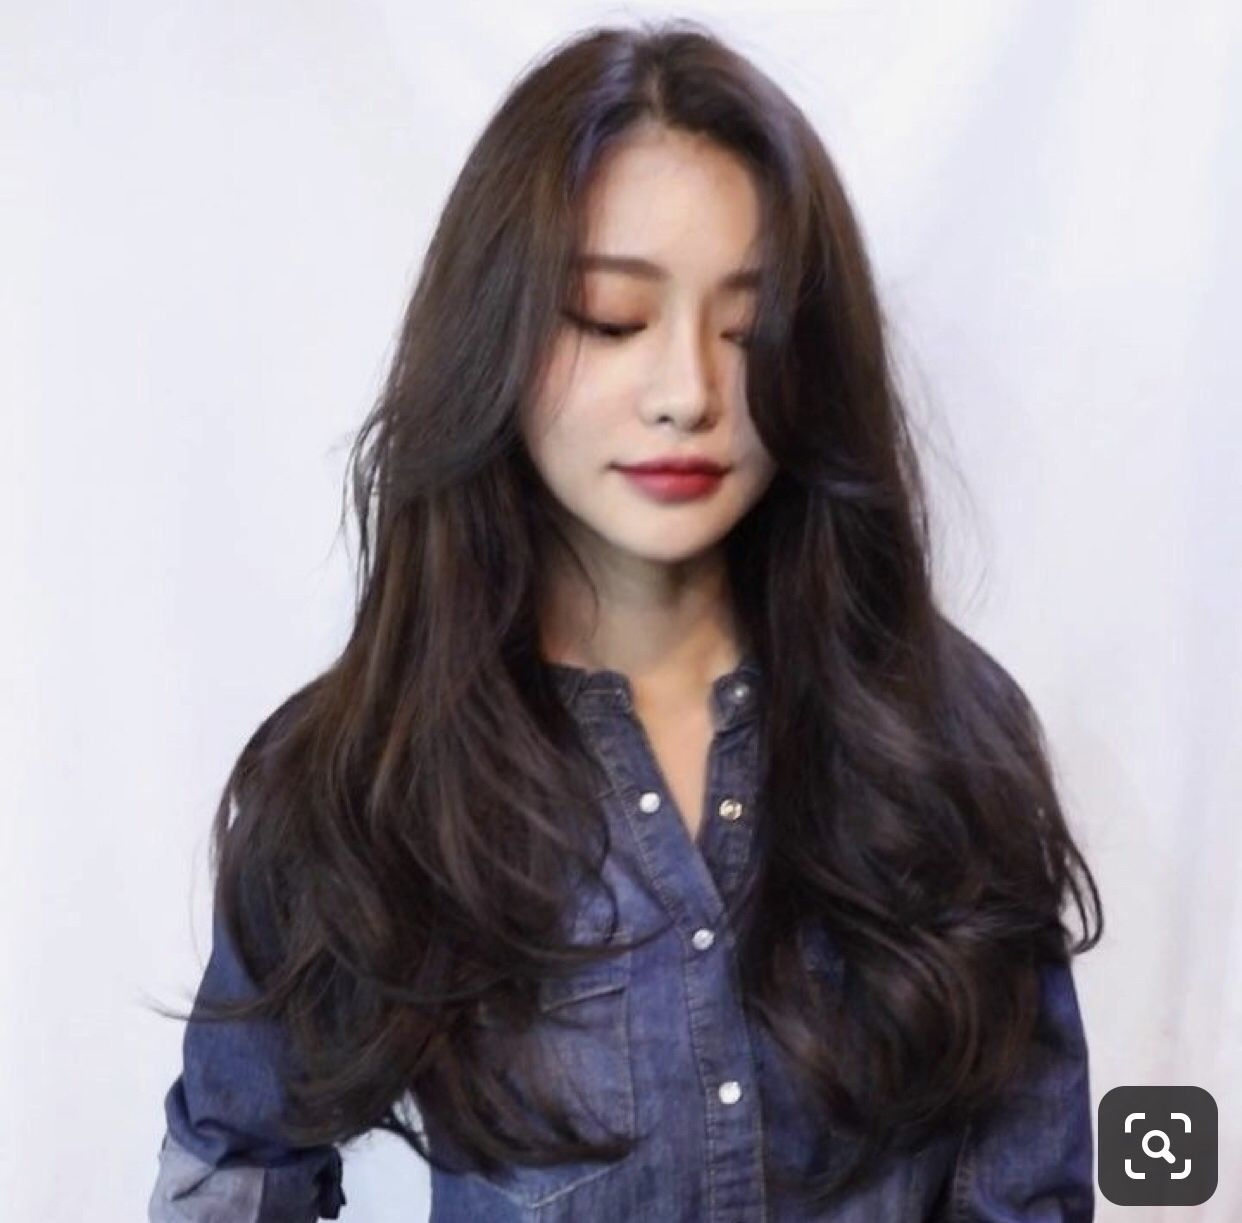 Korean Hairstyles And Fashion Official Korean Fashion Hair Styles Korean Hairstyle Korean Hairstyle Long